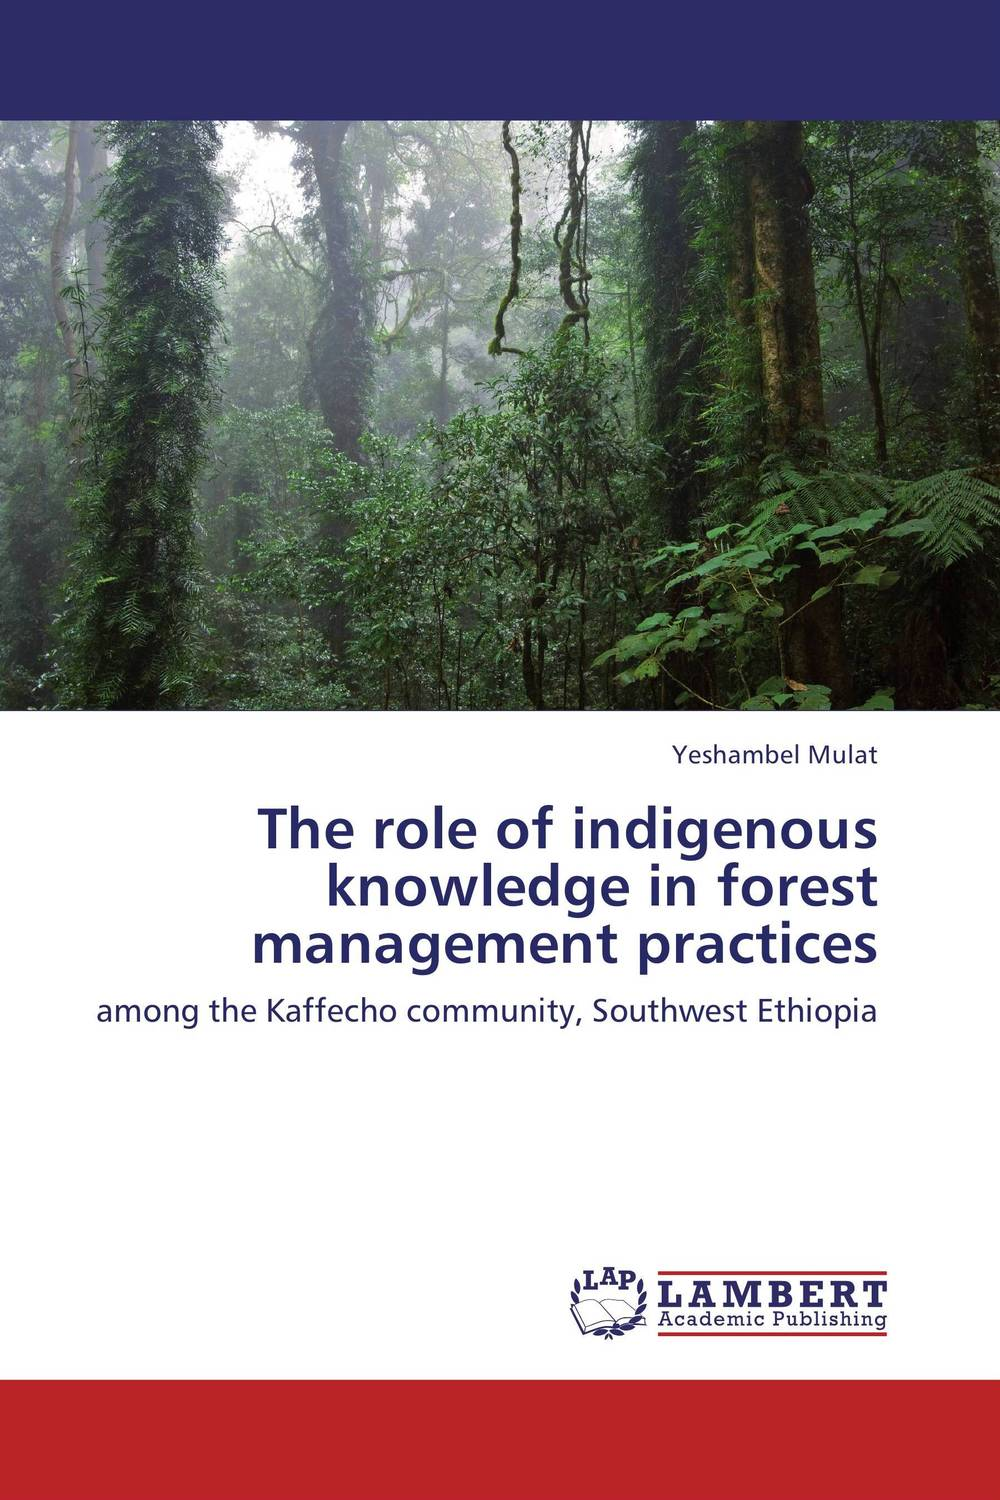 где купить The role of indigenous knowledge in forest management practices по лучшей цене